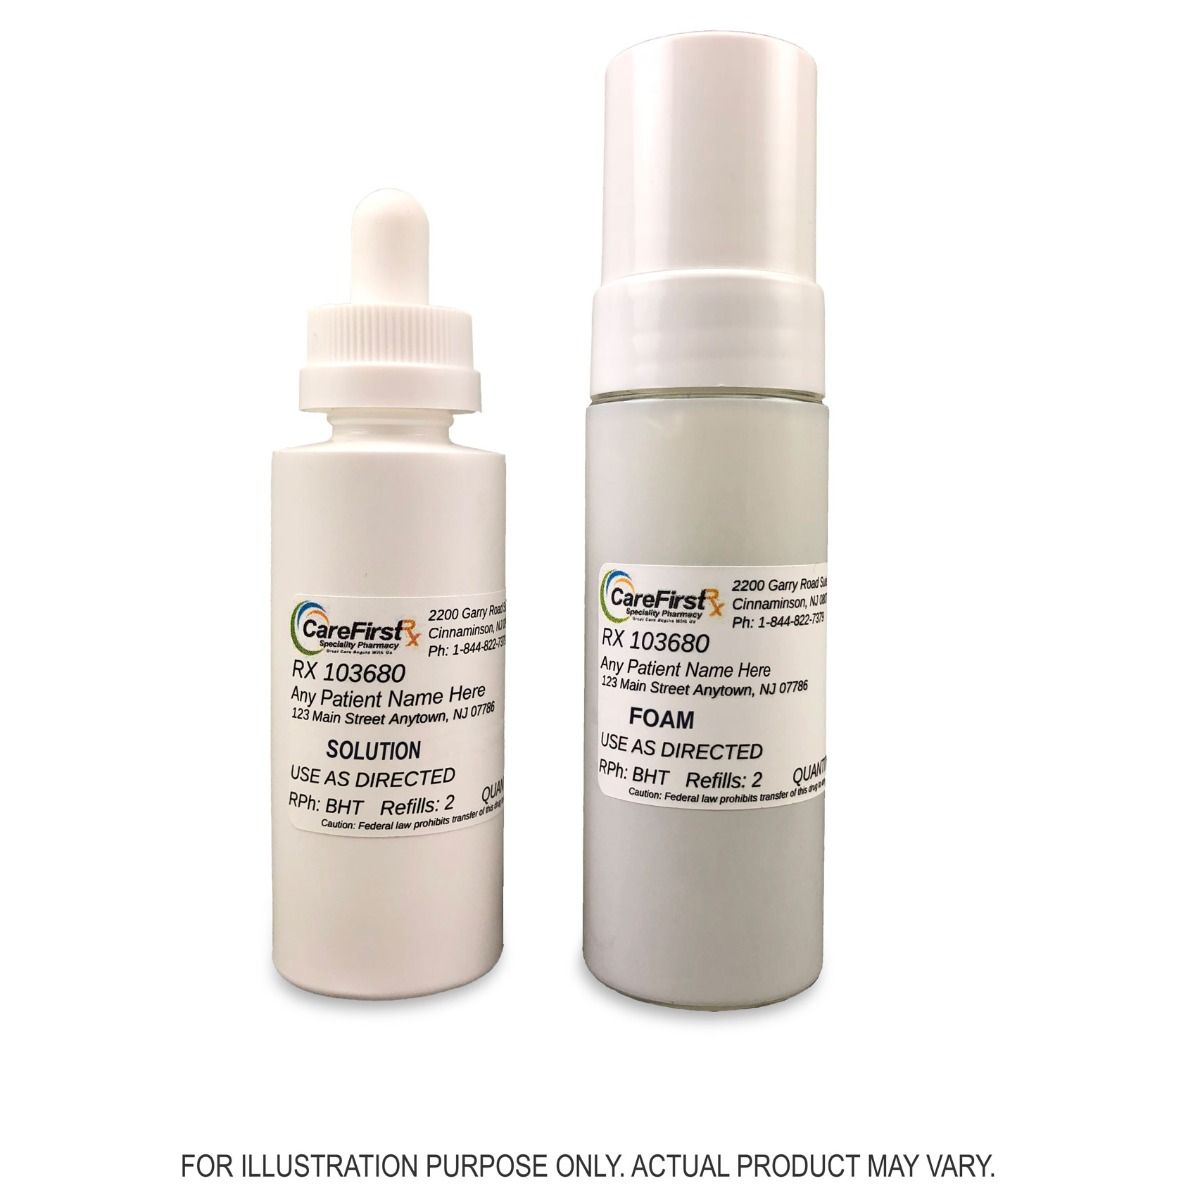 Latanoprost Finasteride Topical Foam Solution Compounded